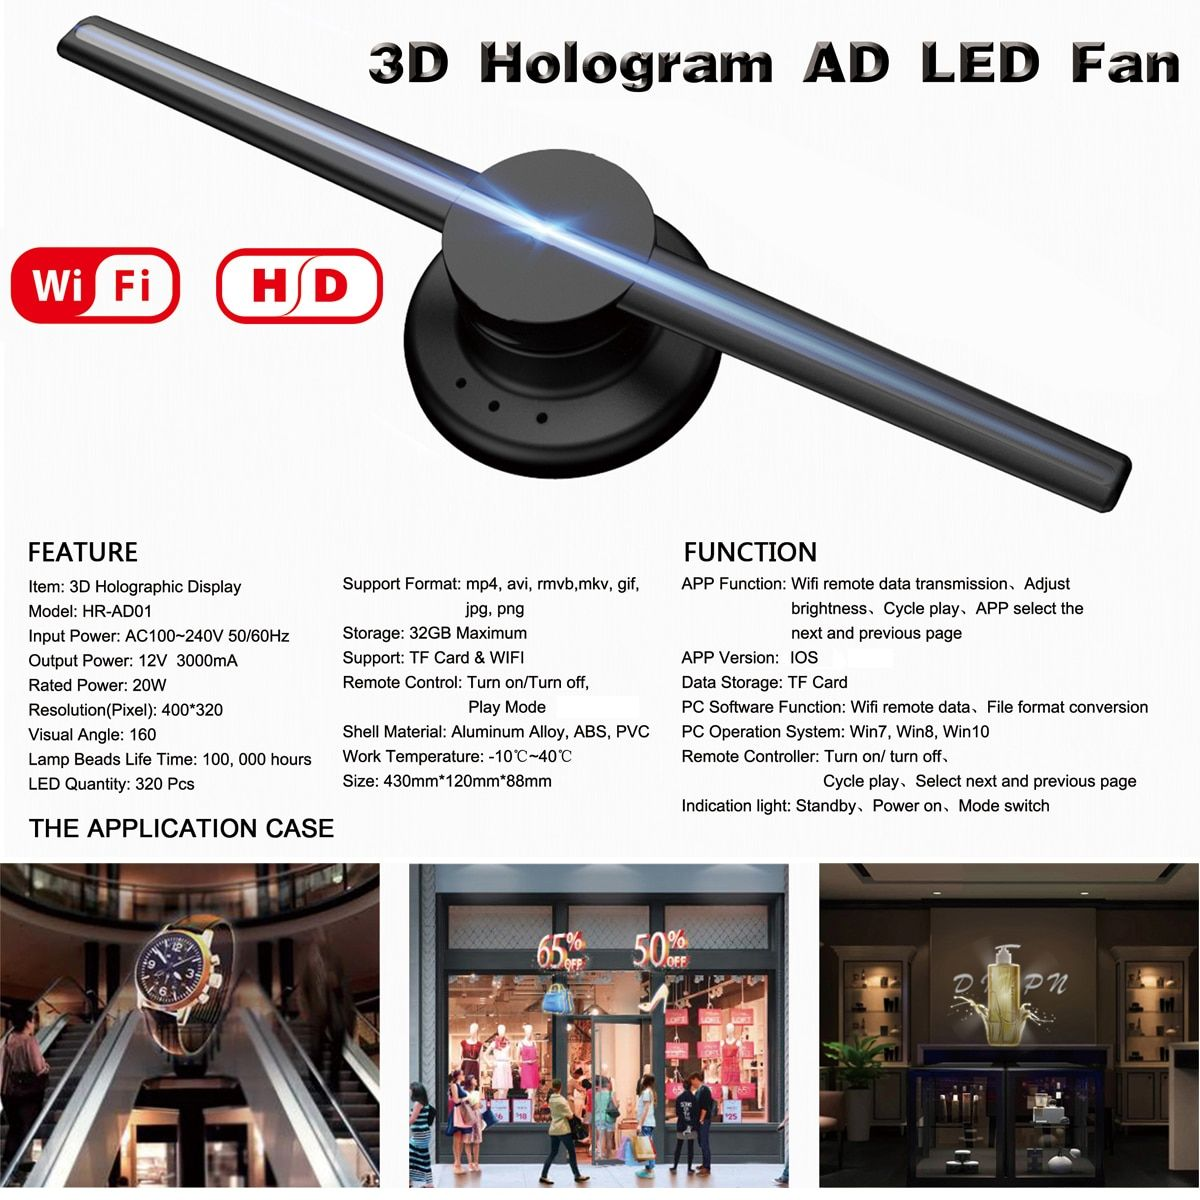 NEW Upgraded Wifi 3D Holographic Projector Hologram Player LED Display Fan Advertising Light APP Control 42cm/16.54